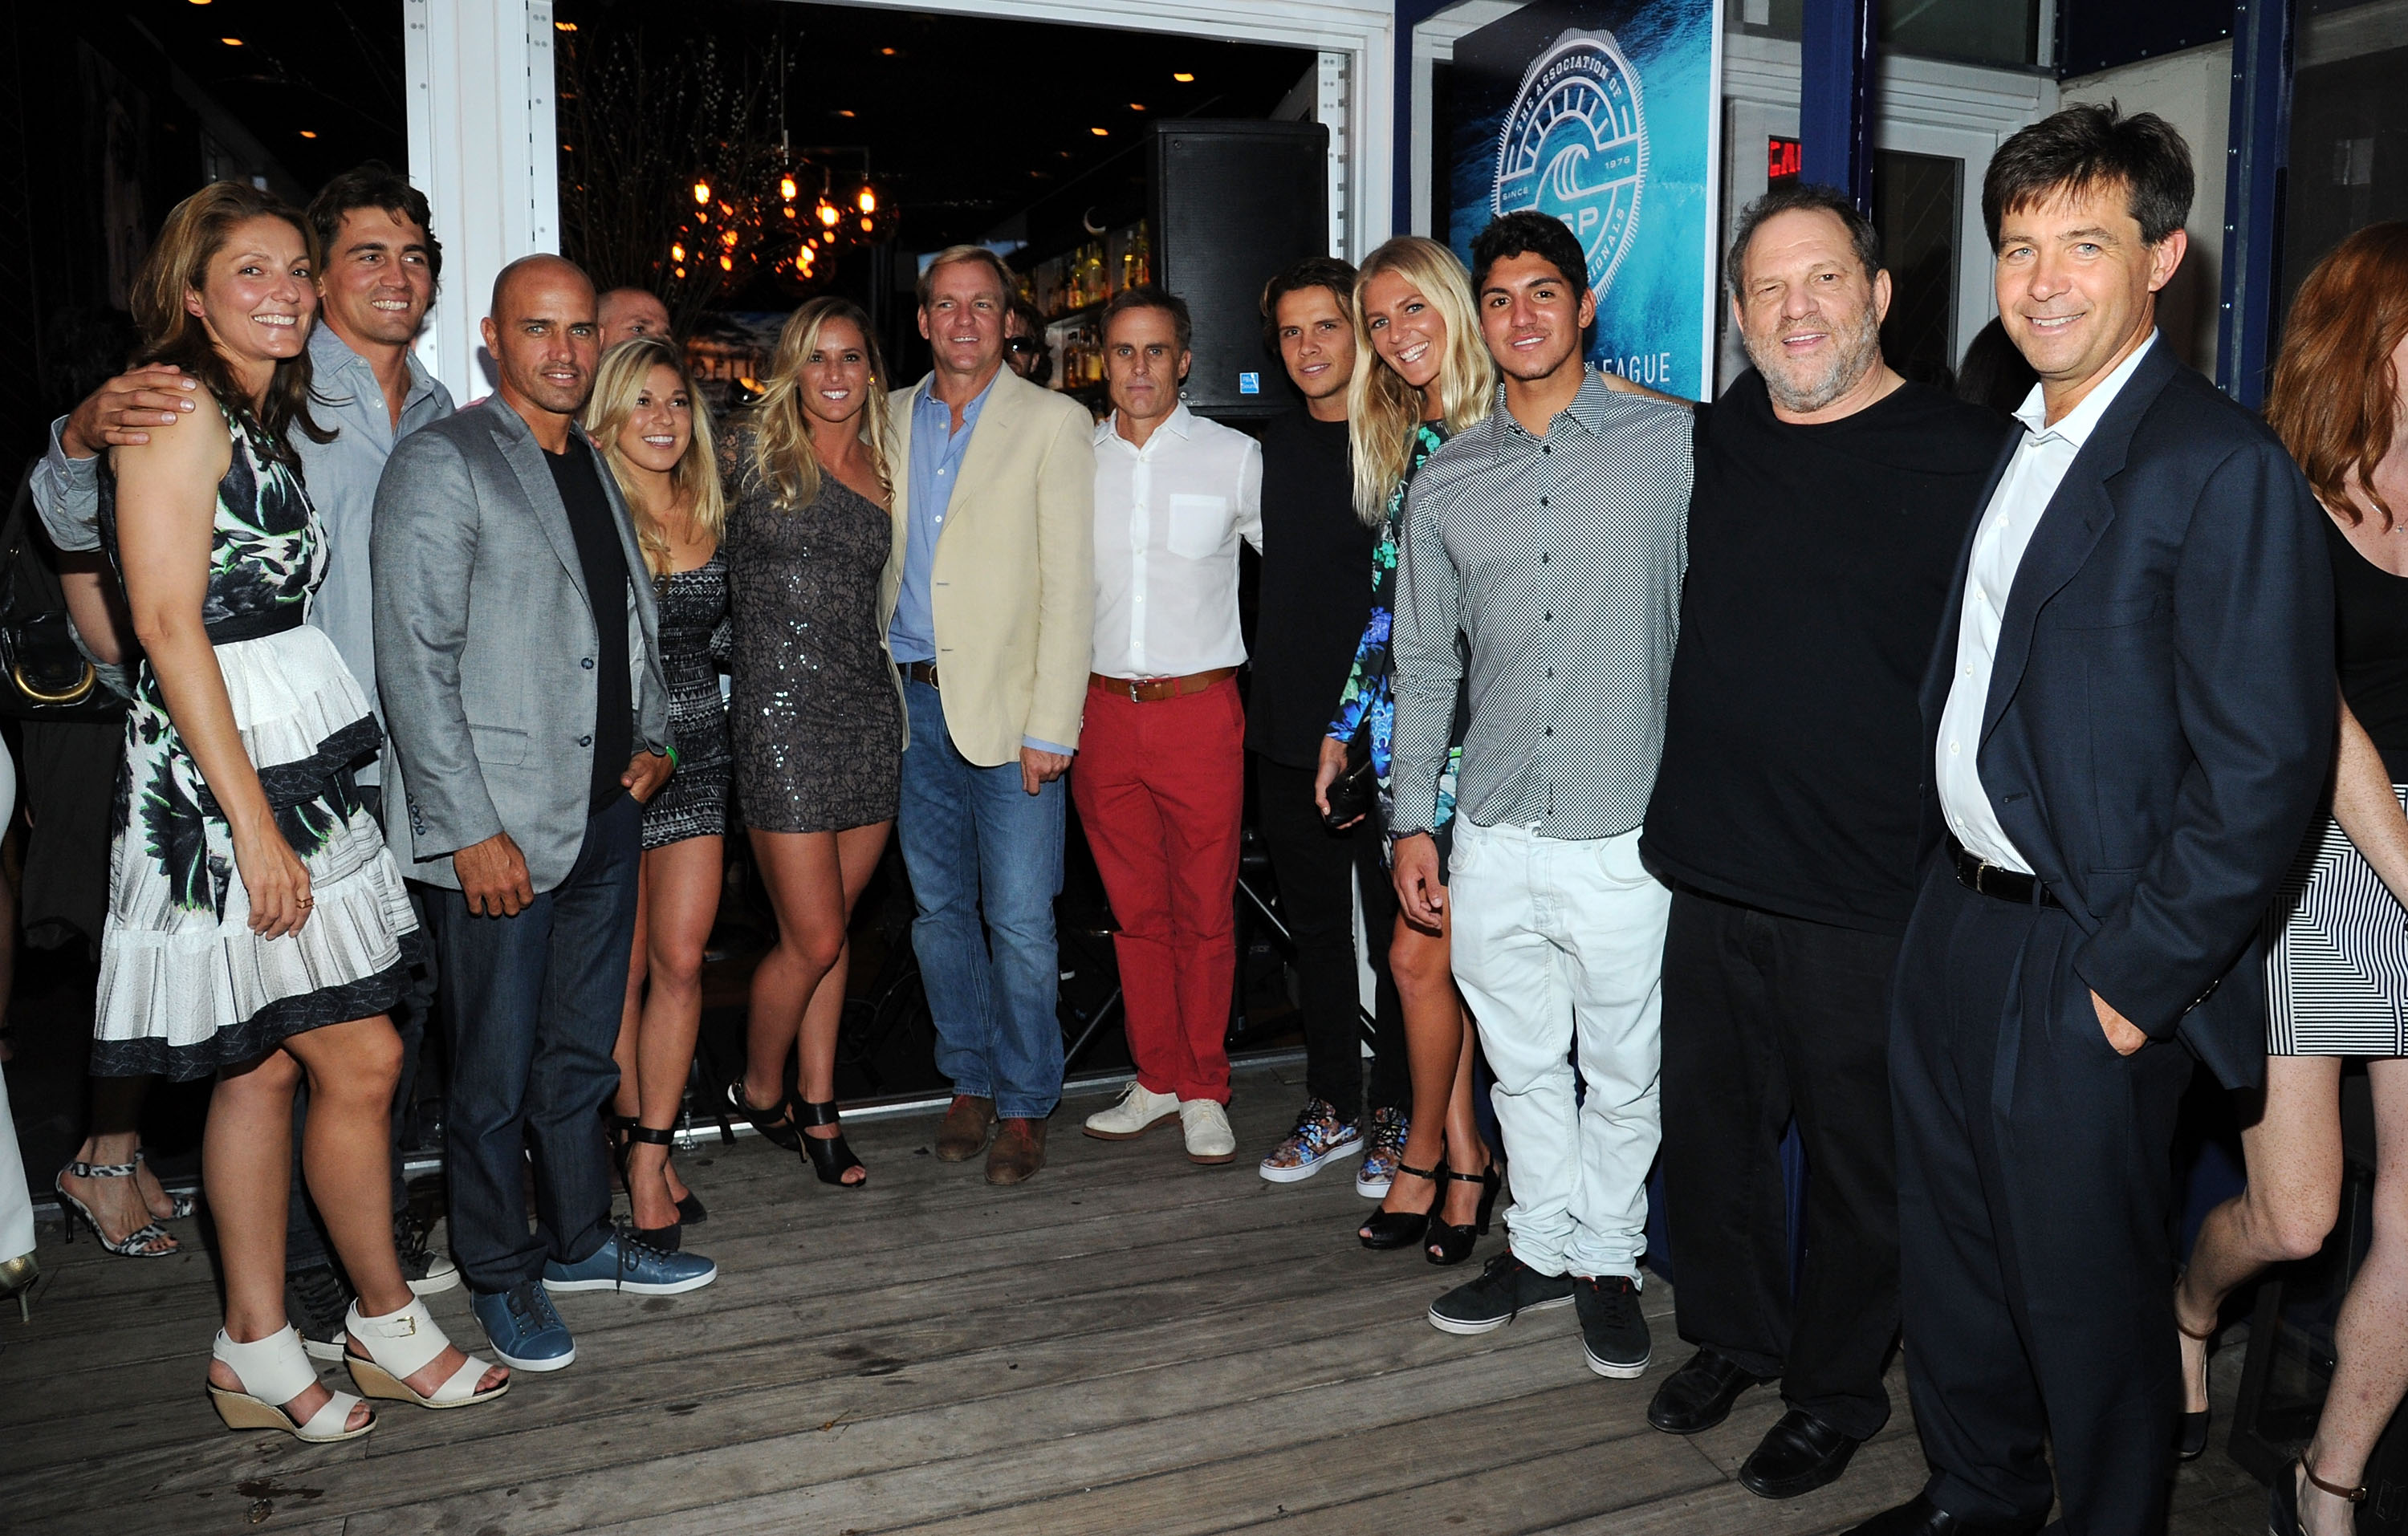 Harvey Weinstein, Dirk Ziff and others at the World Surf League Cocktail Party.